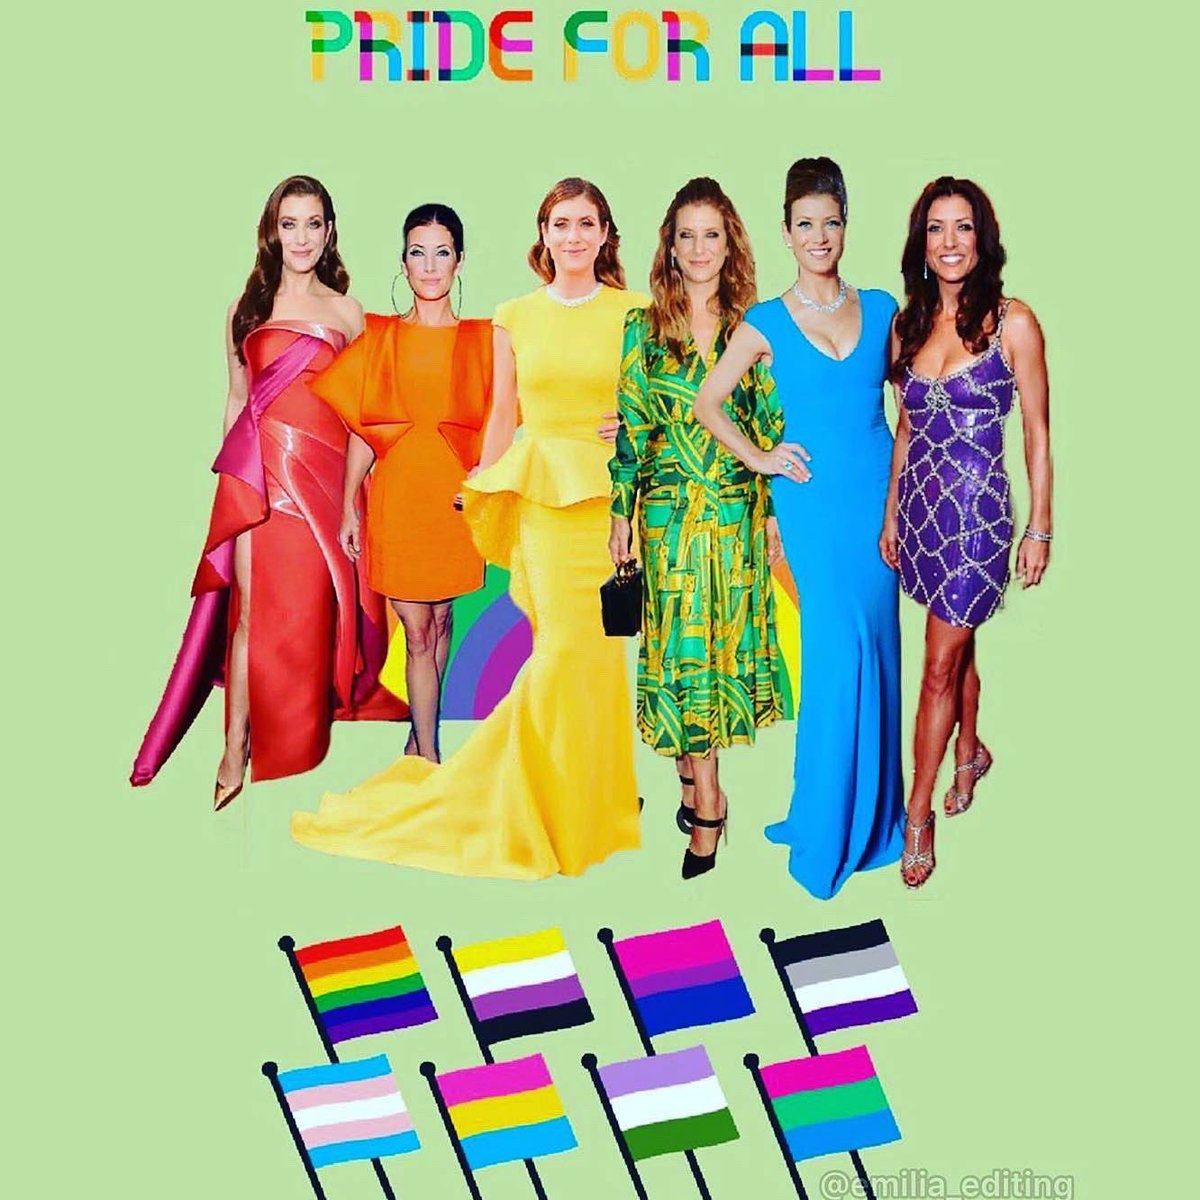 In love with all your amazing #pride edits 😍🏳️🌈 I hope u are celebrating love and diversity this month and every month 💃 Happy Pride Babes 💋🎉 https://t.co/dhVXxQrOpr